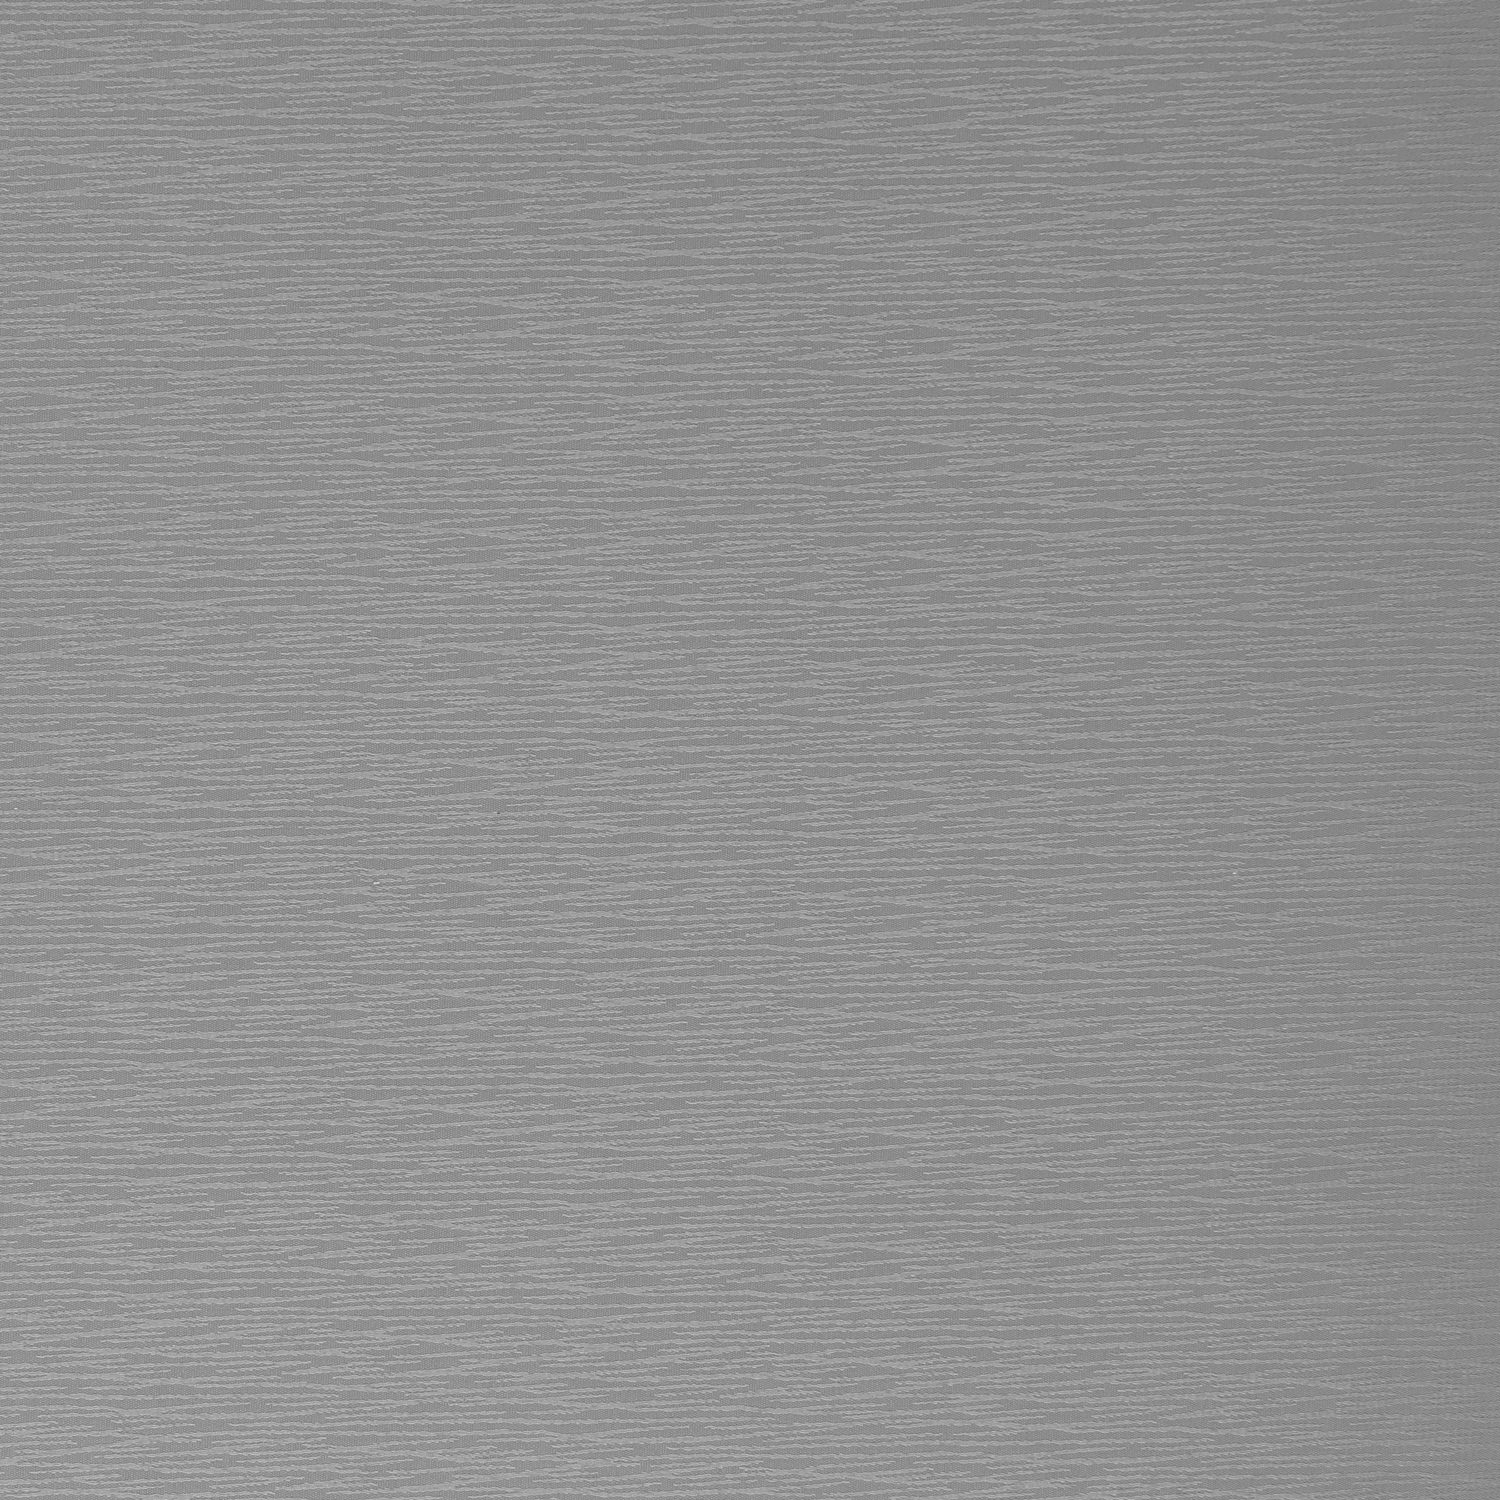 Dunsmuir Silver Boucle Textured Blackout Roller Shade Swatch